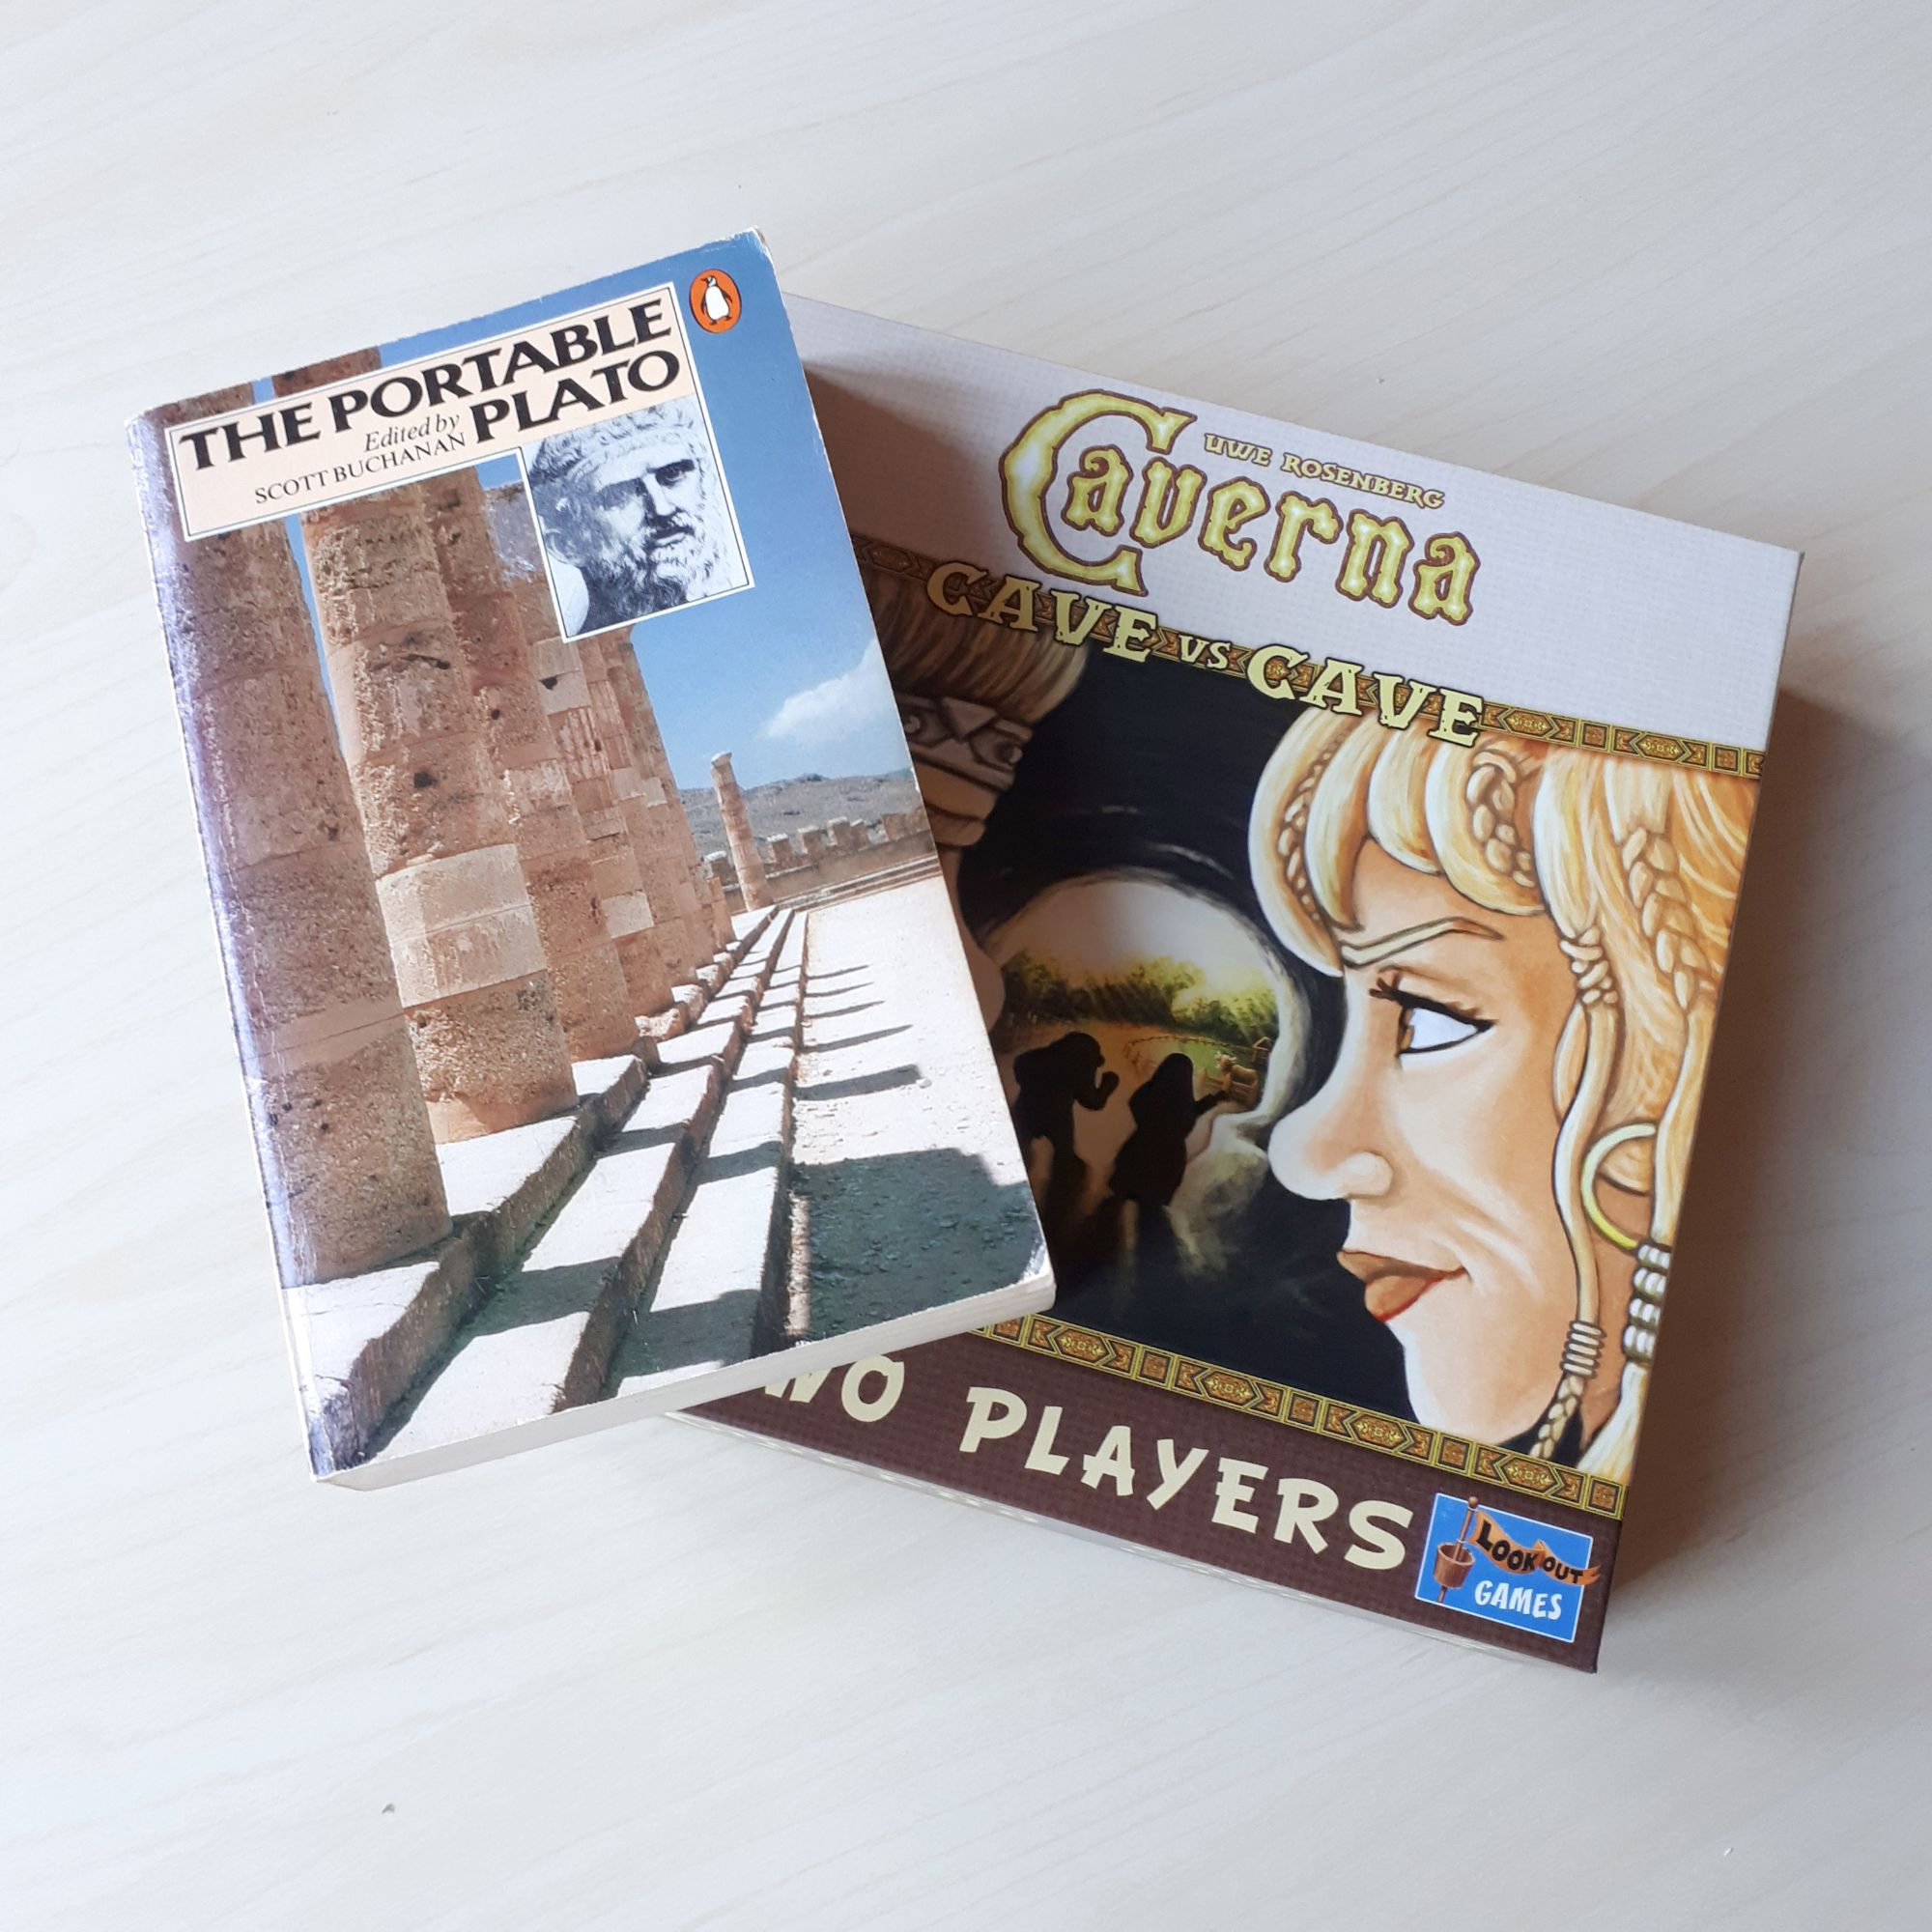 Plato and Game